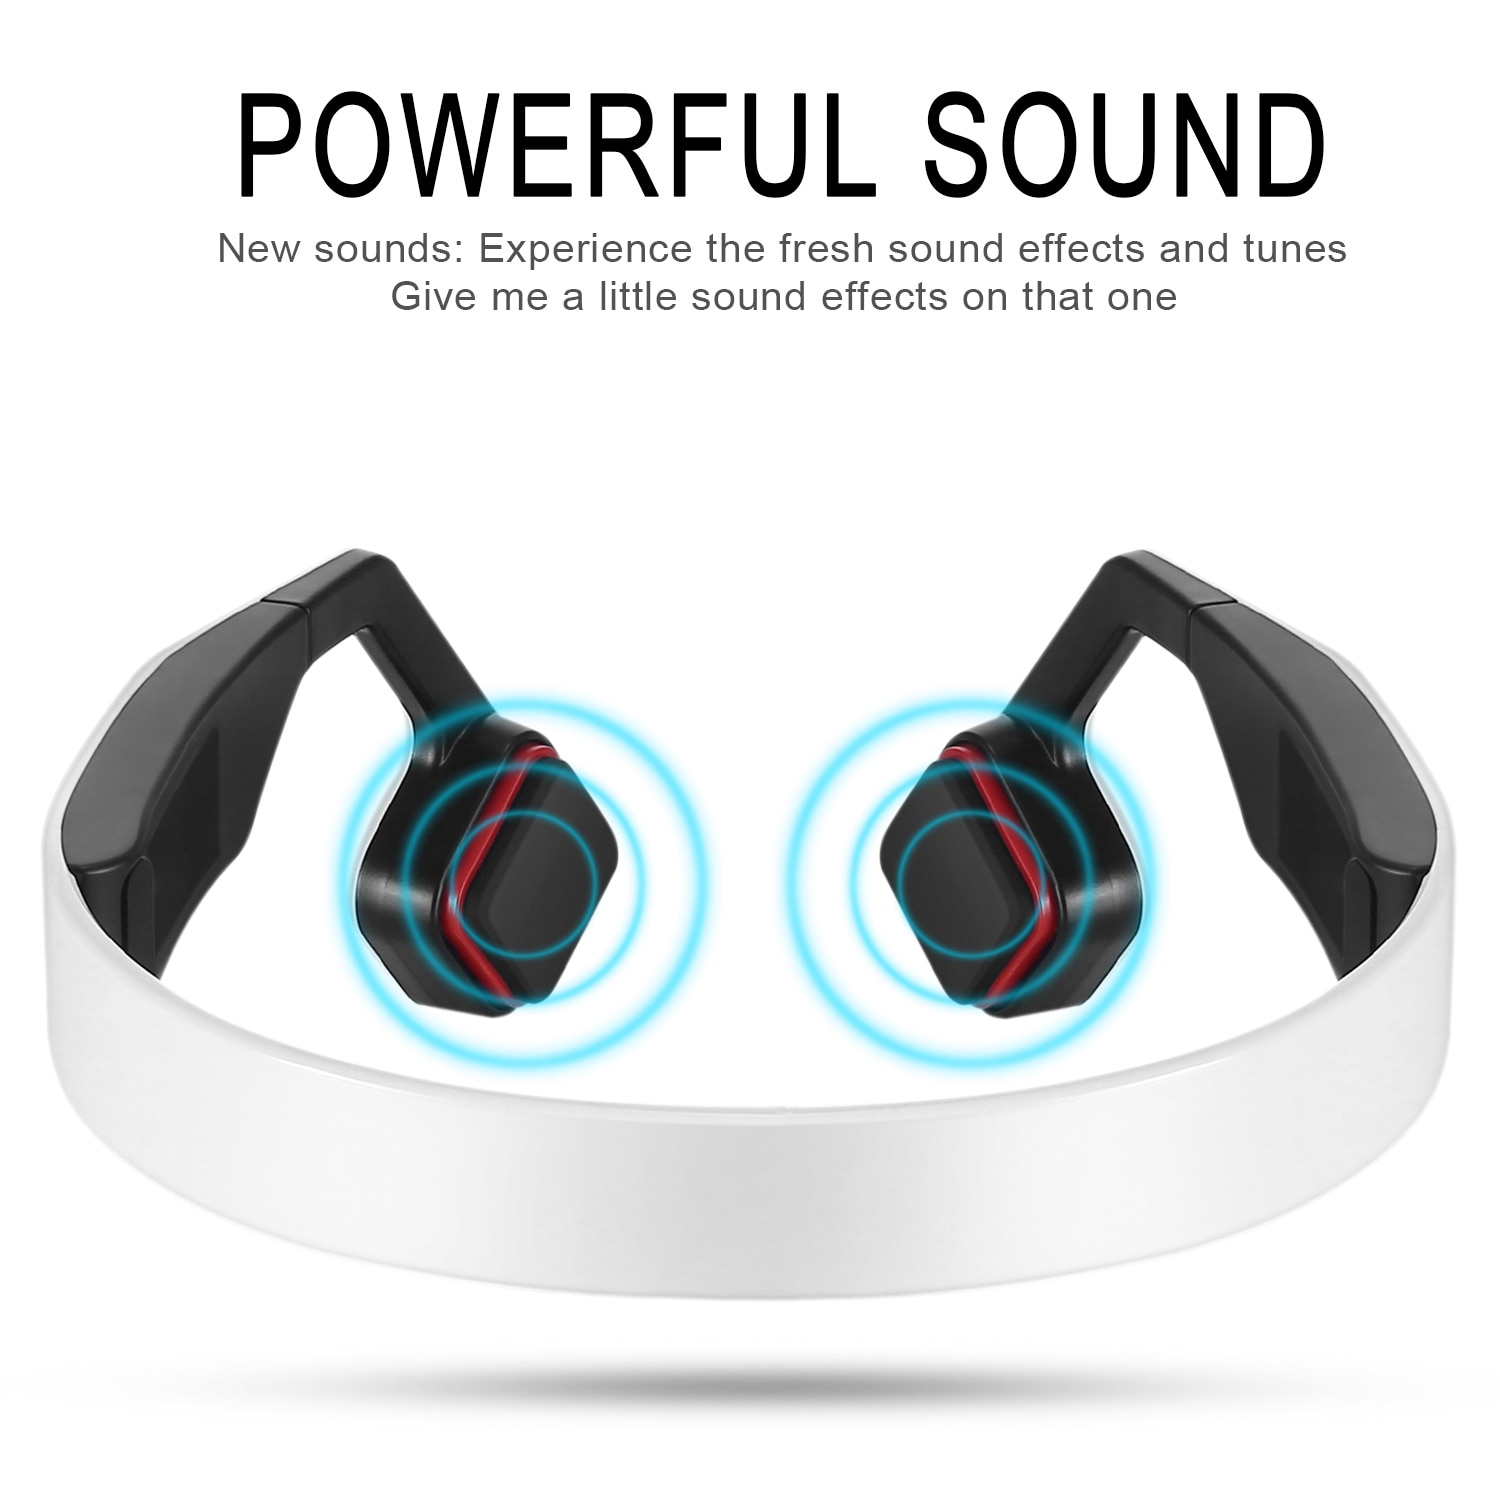 BN-701T Hearing Aid Earphone Wireless Bone Conduction Headphones elder headphone built-in battery Bluetooth